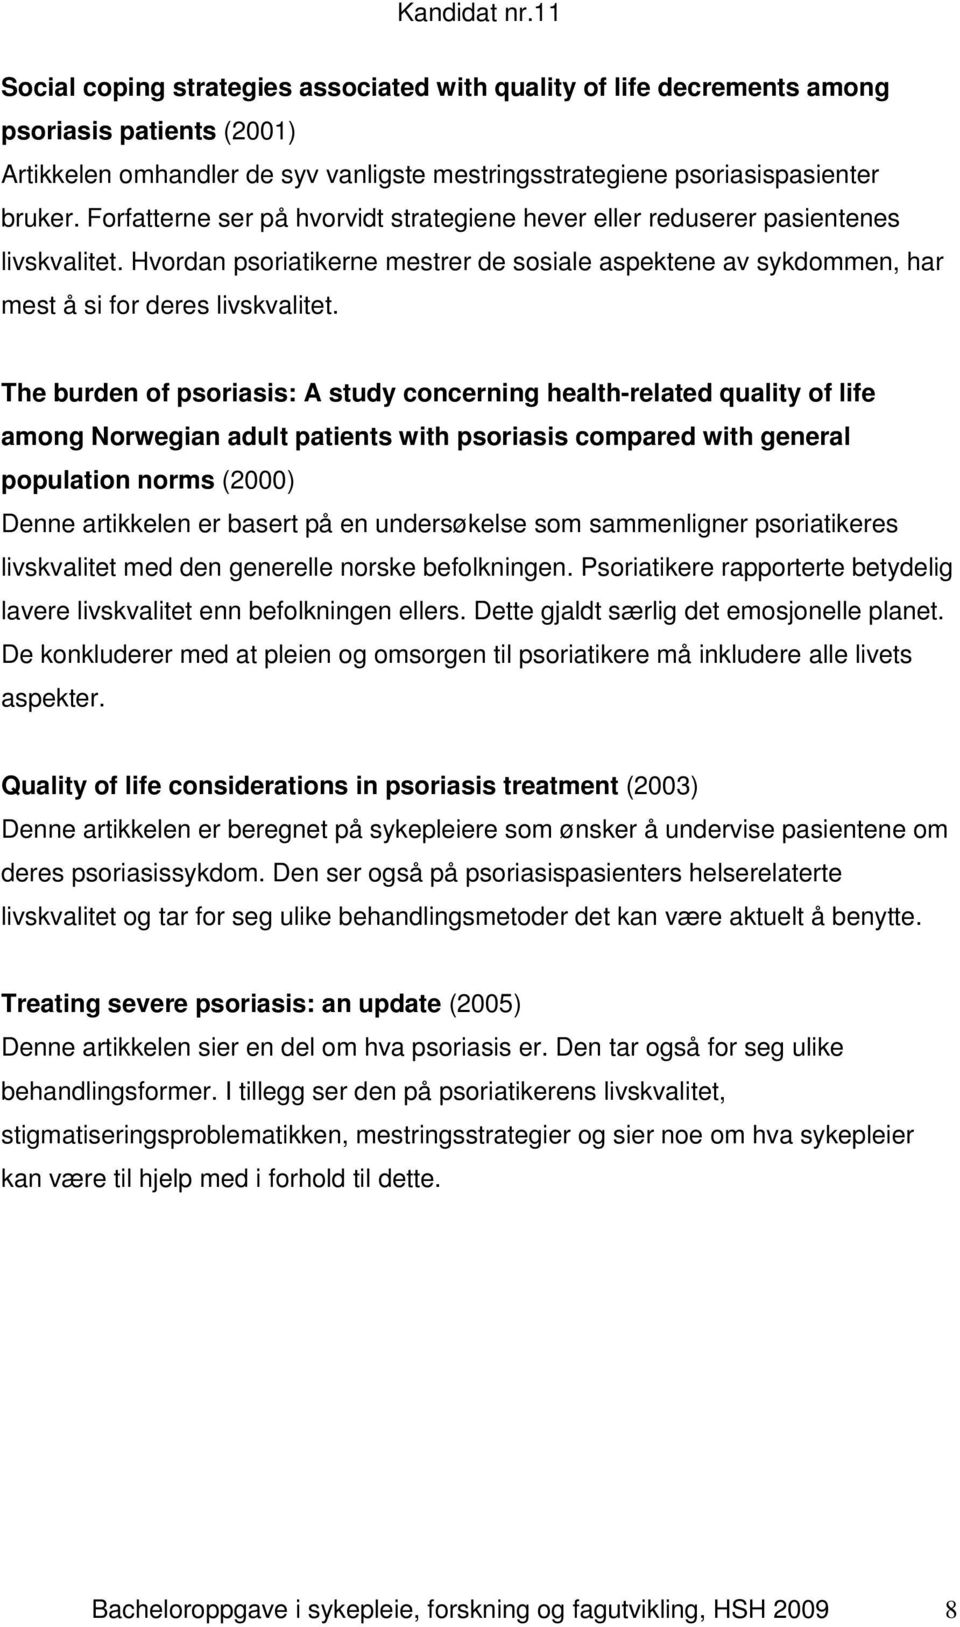 The burden of psoriasis: A study concerning health-related quality of life among Norwegian adult patients with psoriasis compared with general population norms (2000) Denne artikkelen er basert på en